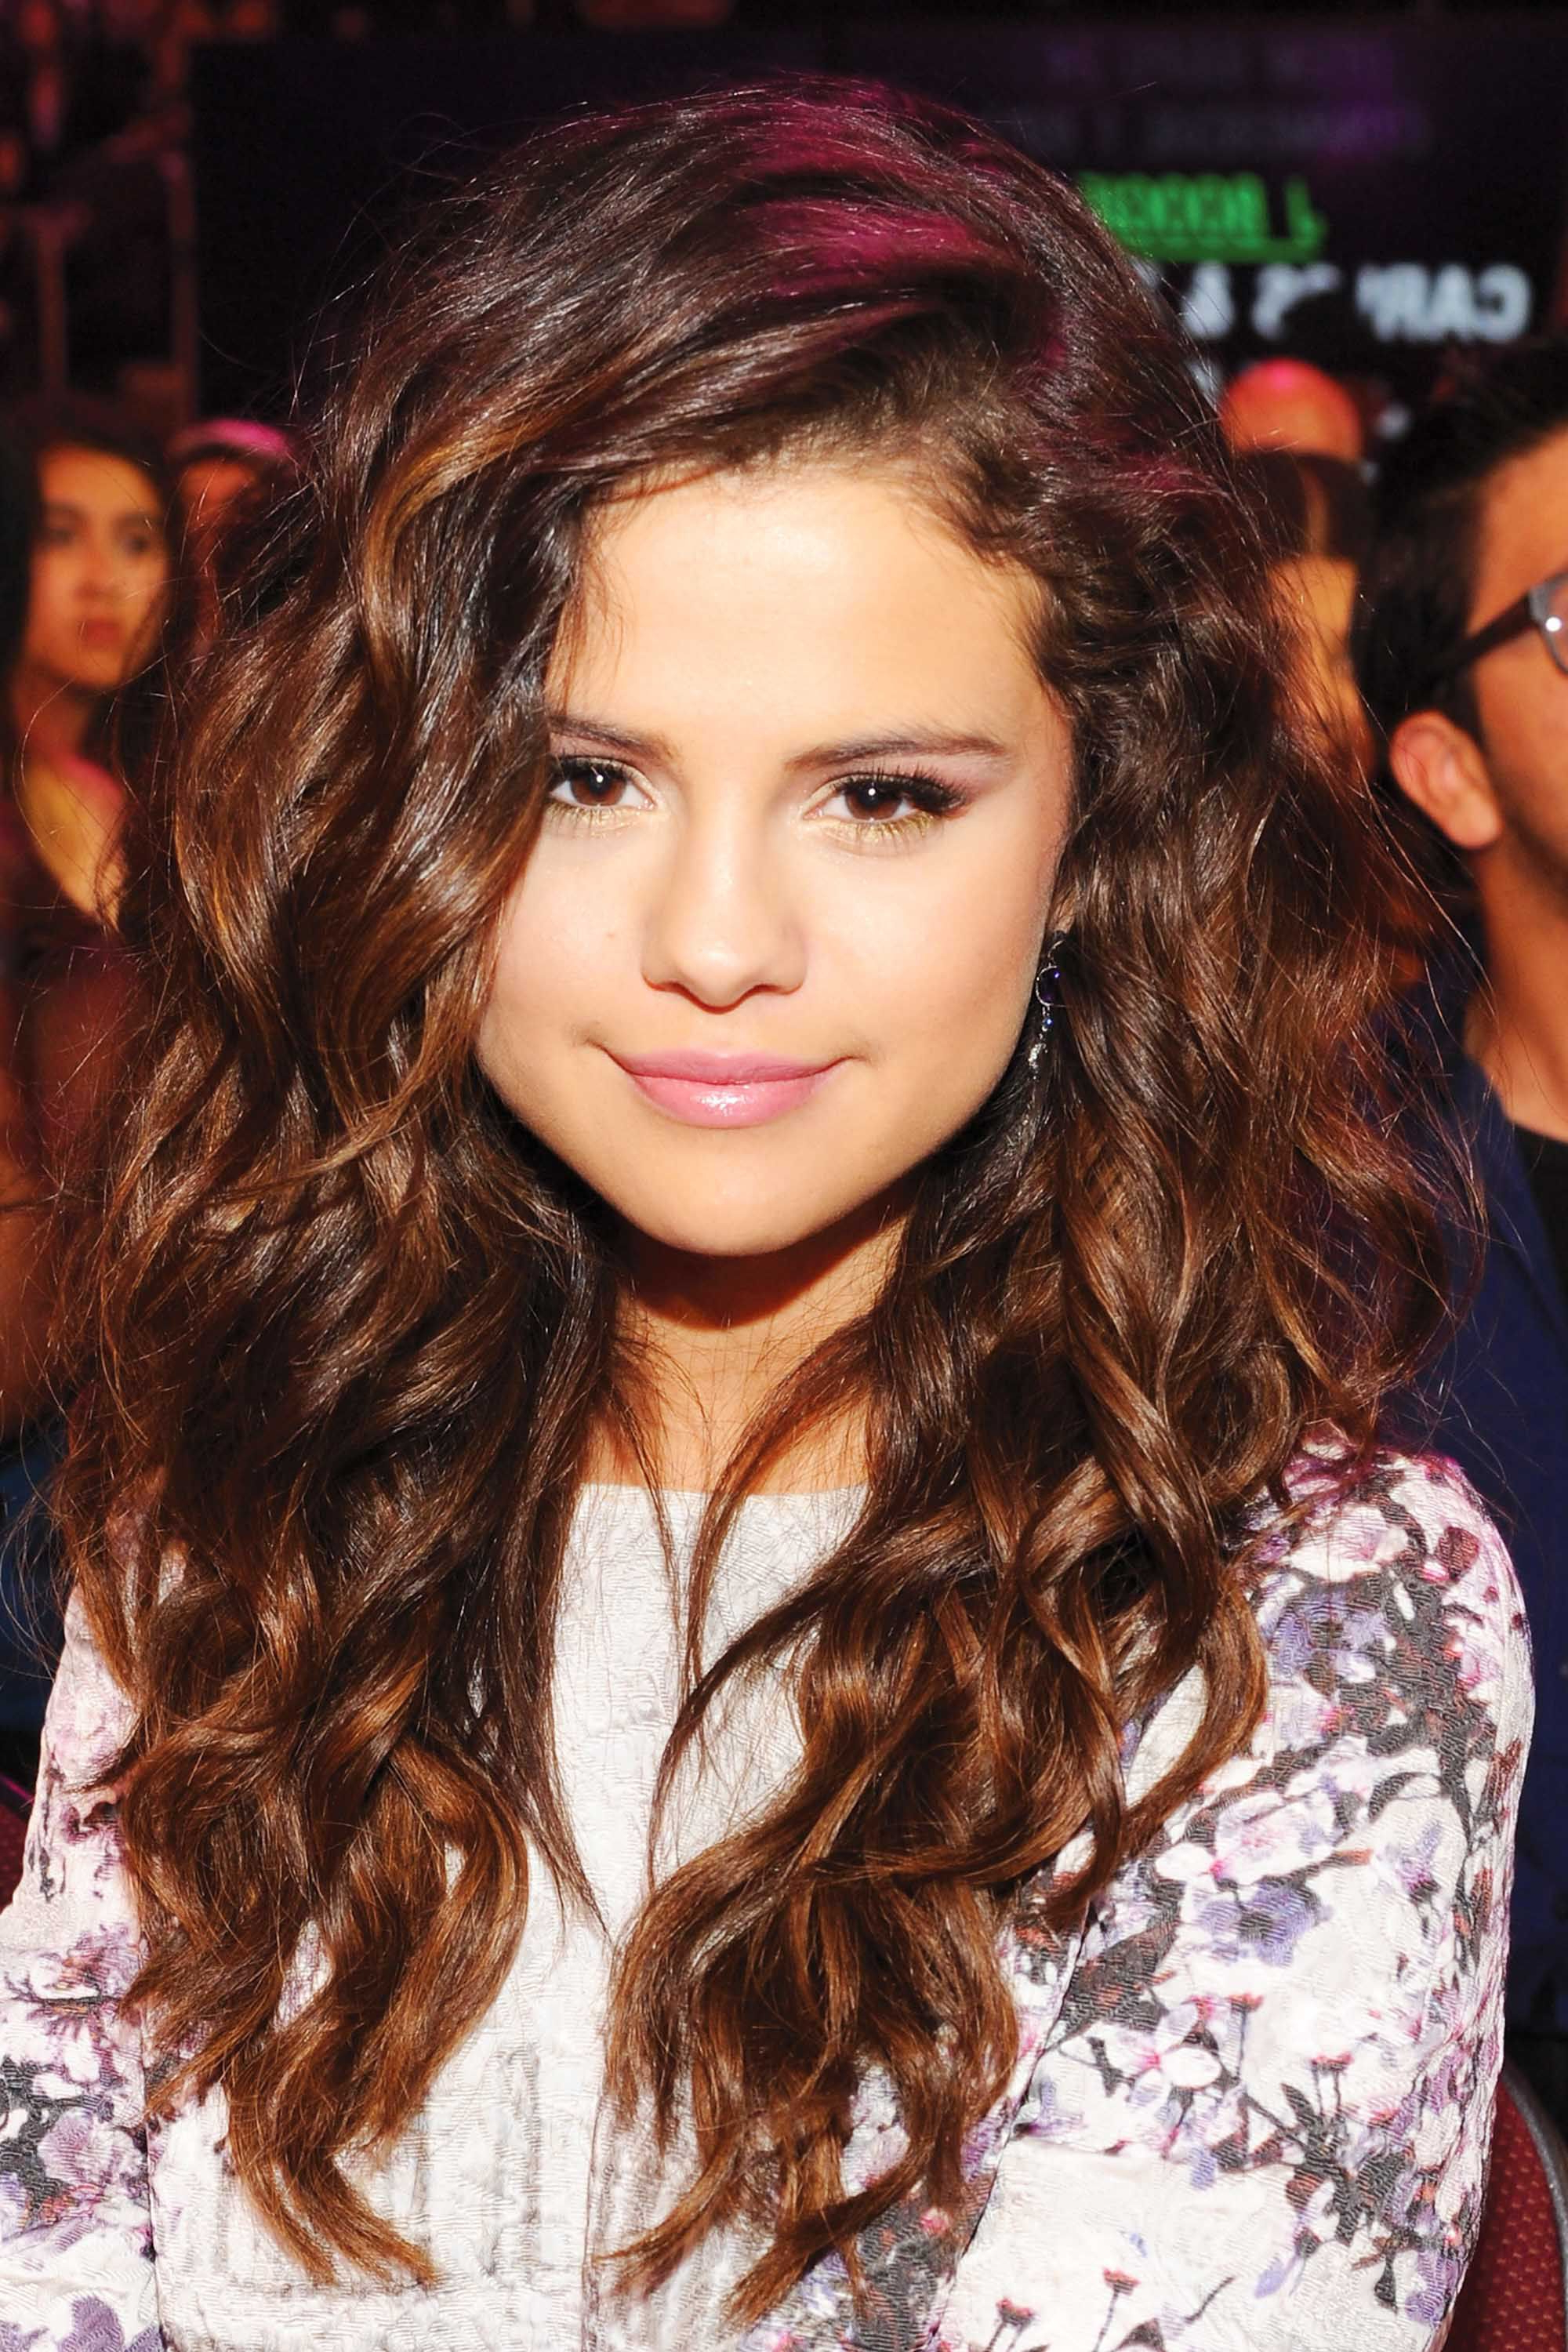 Best Selena Gomez Hairstyles – 32 Hair Ideas From Selena Gomez Within Selena Gomez Short Hairstyles (View 22 of 25)